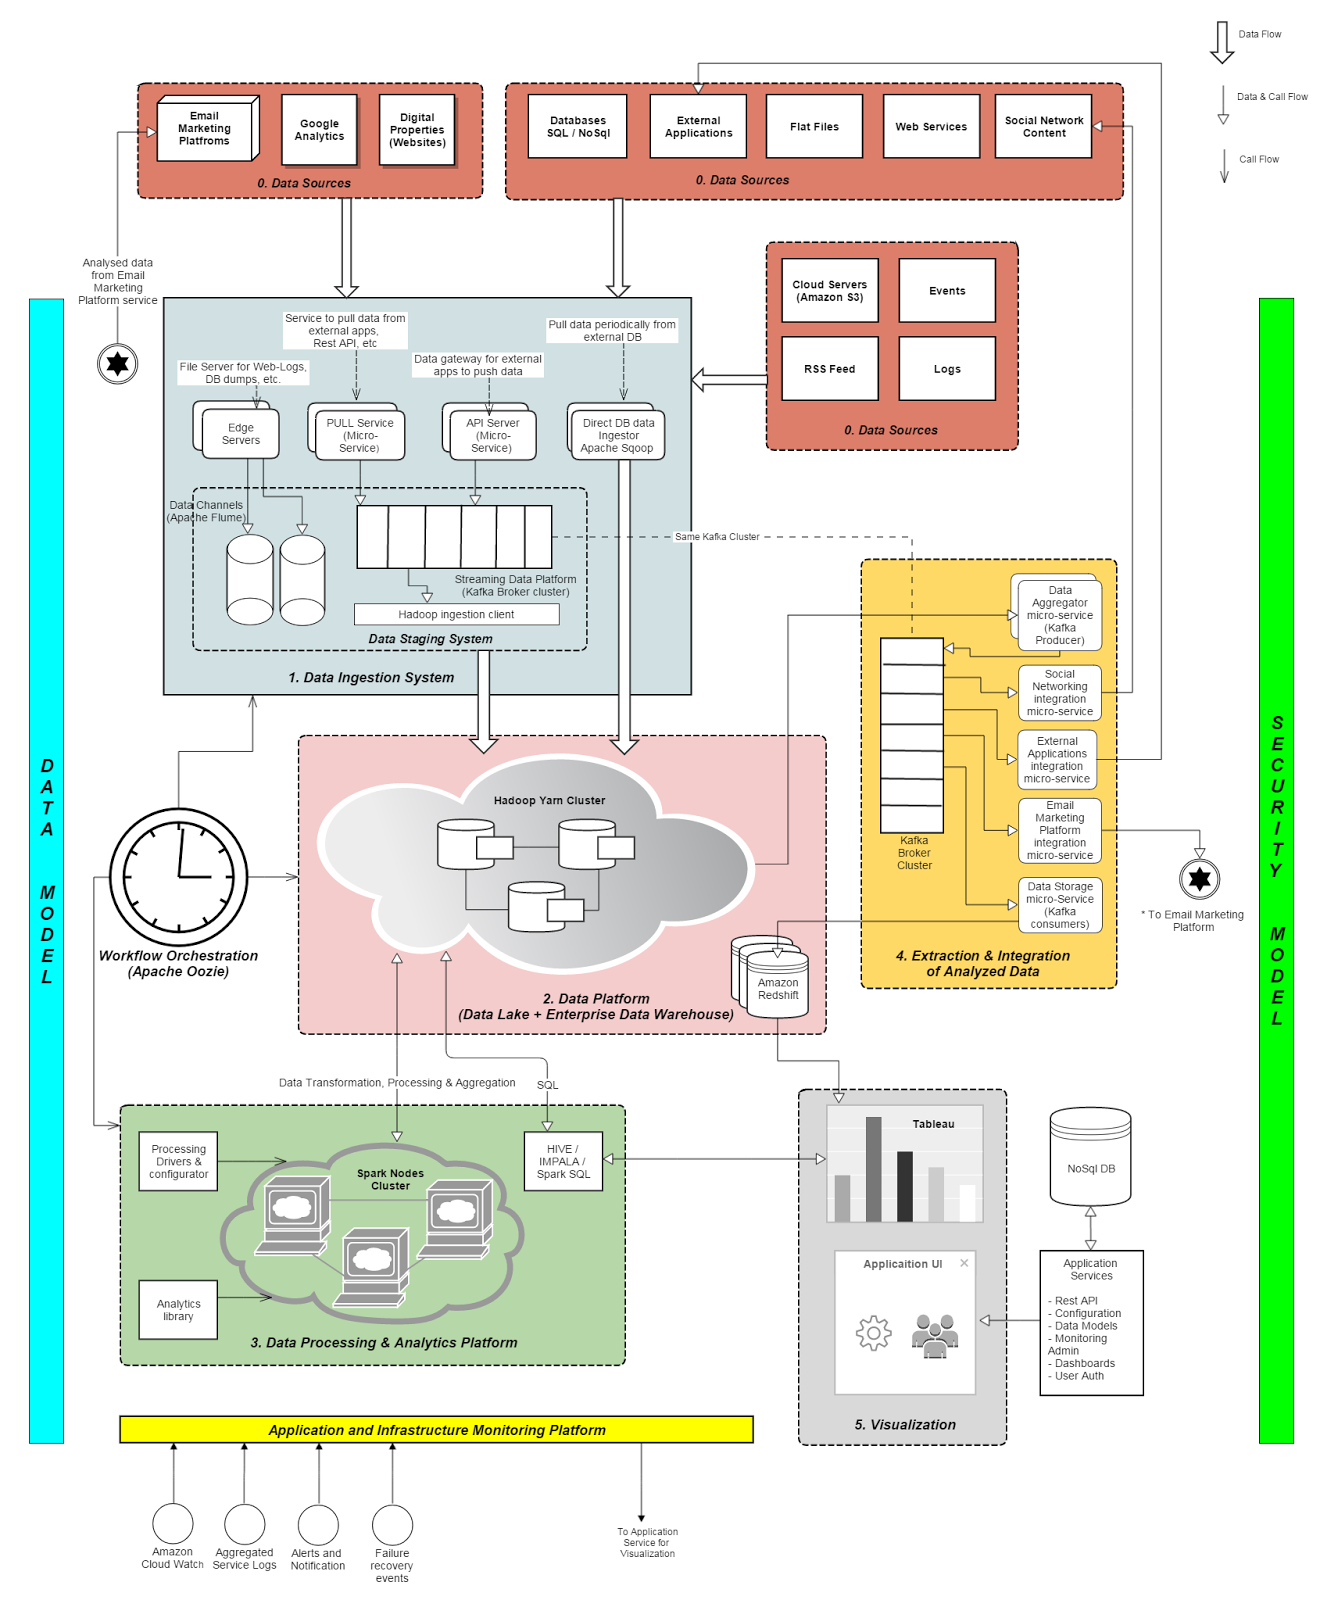 Technodeation: Reference Architecture for Enterprise Big